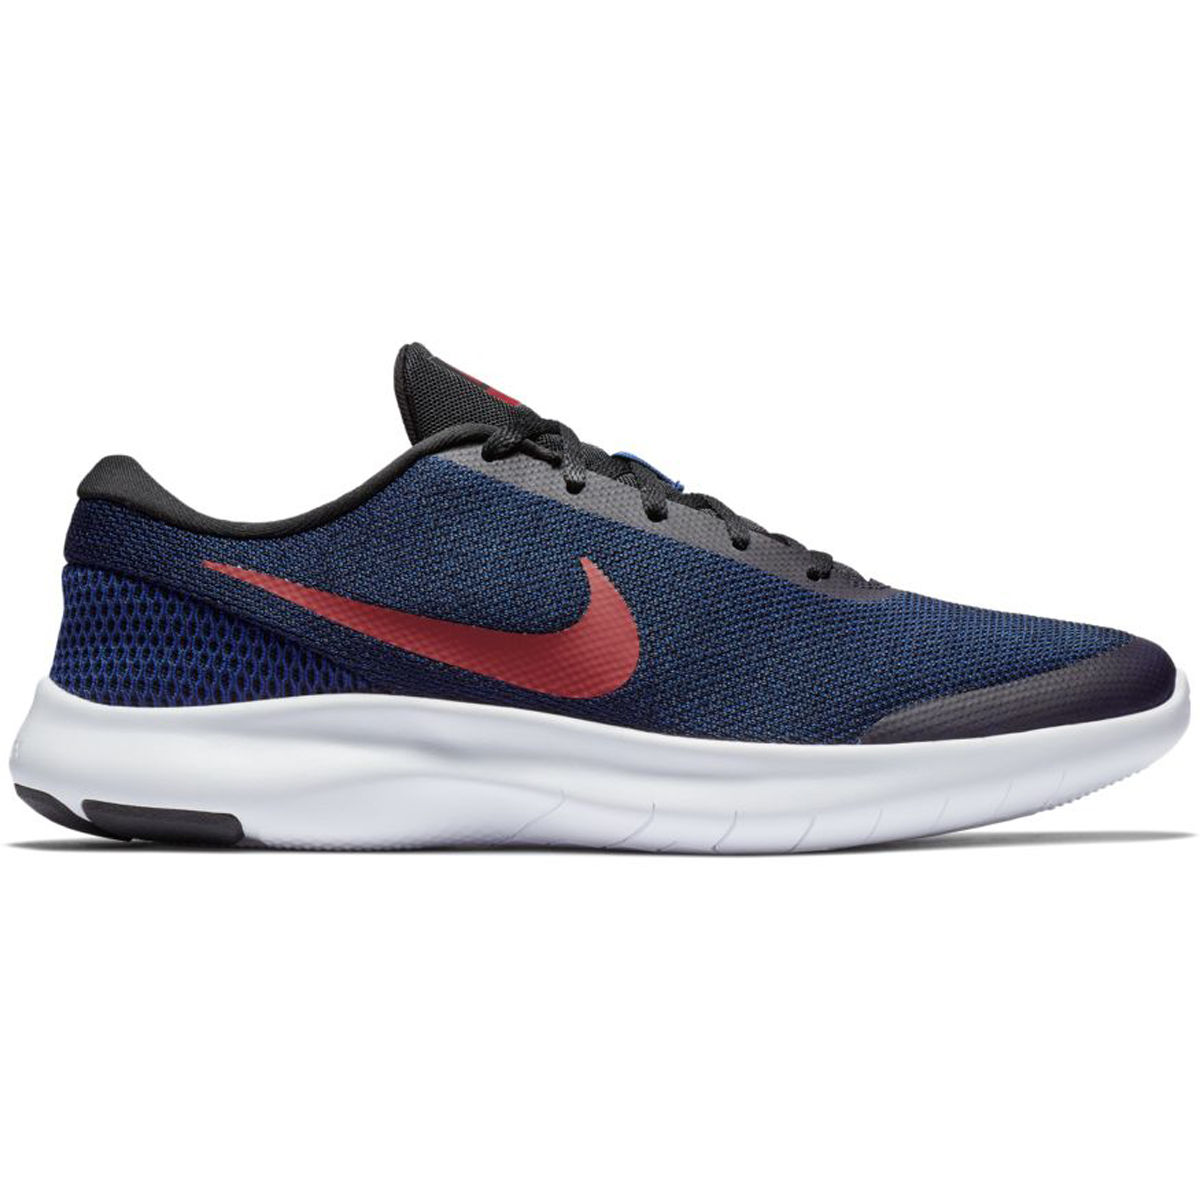 Nike Flex Experience RN 7 Mens Running Shoe